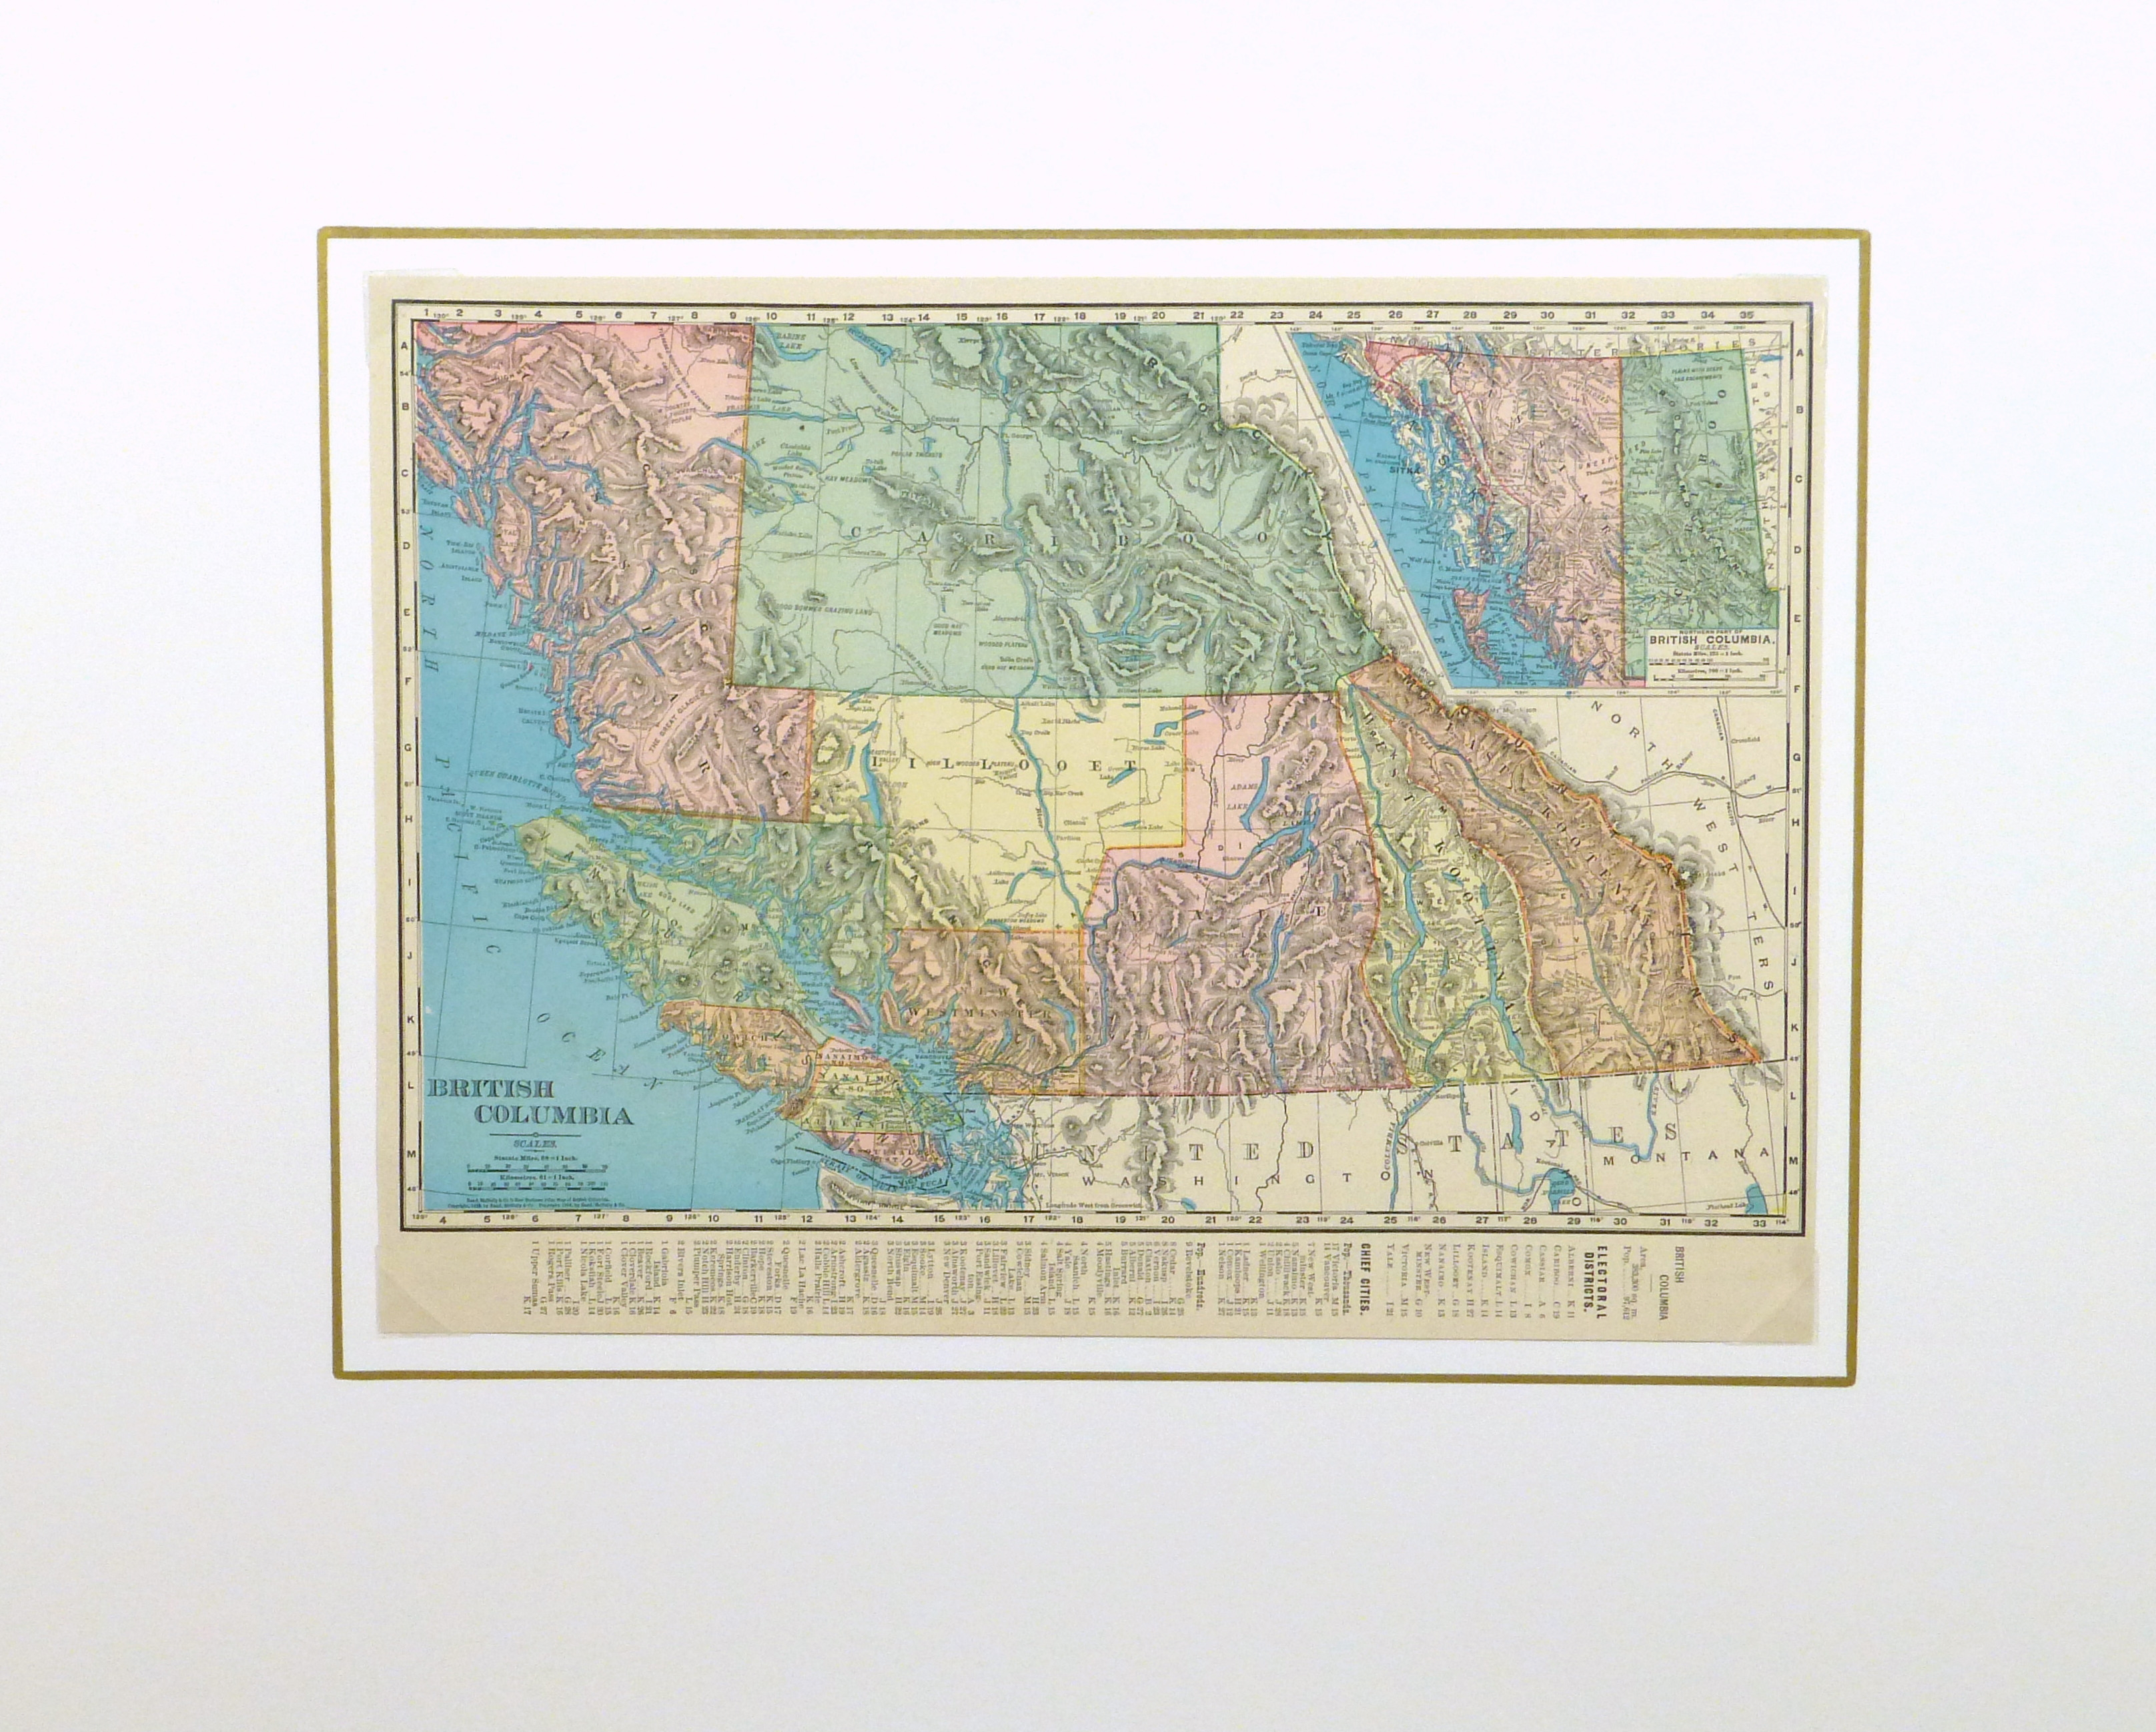 British Columbia, Canada Map, 1895-matted-8554K